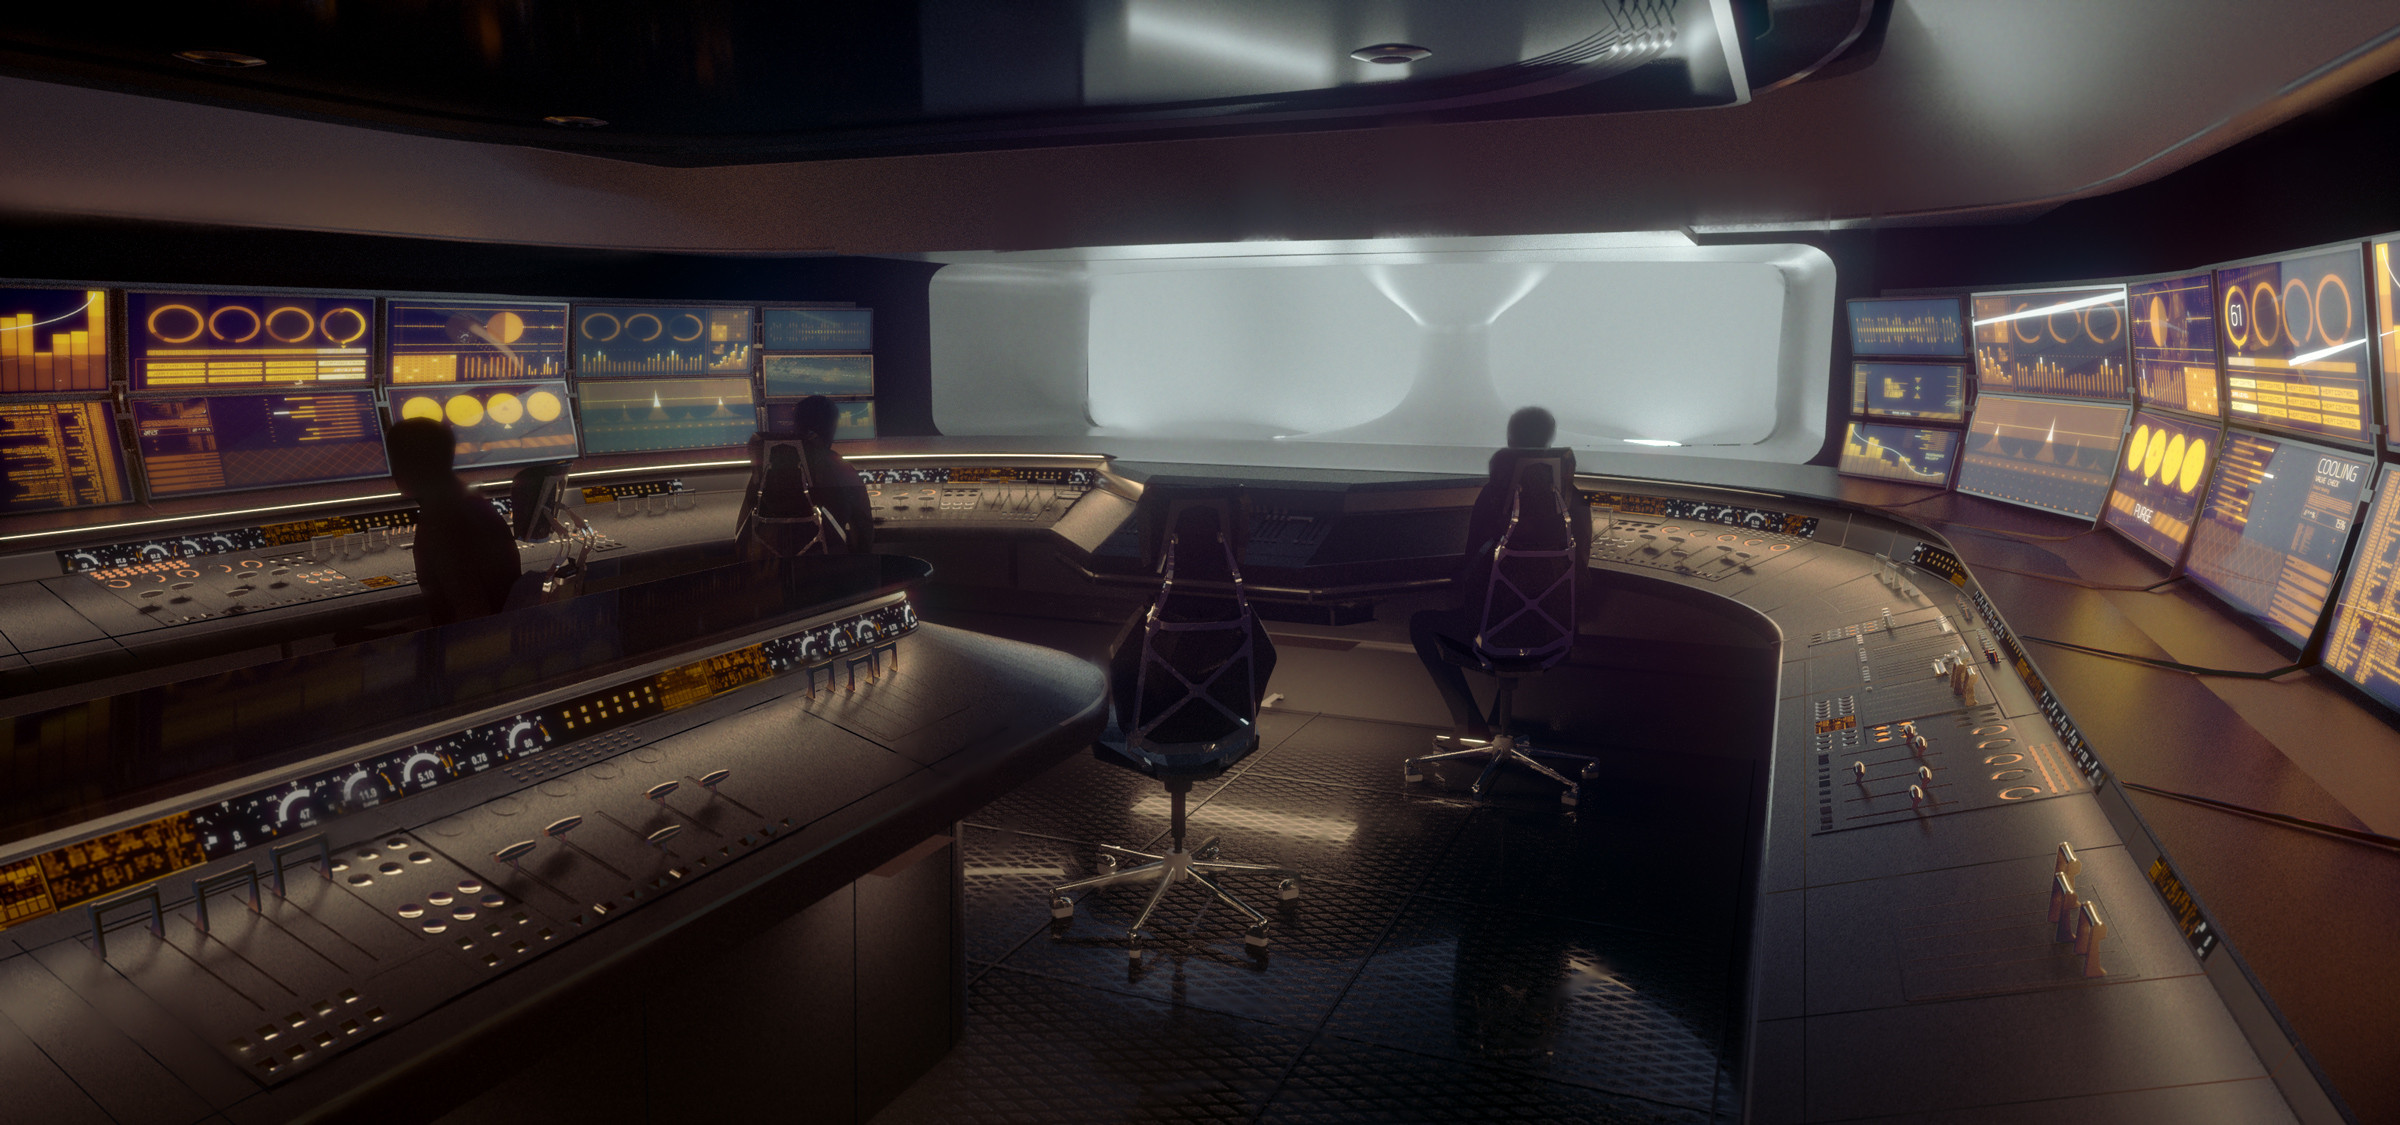 Control room, establishing shot